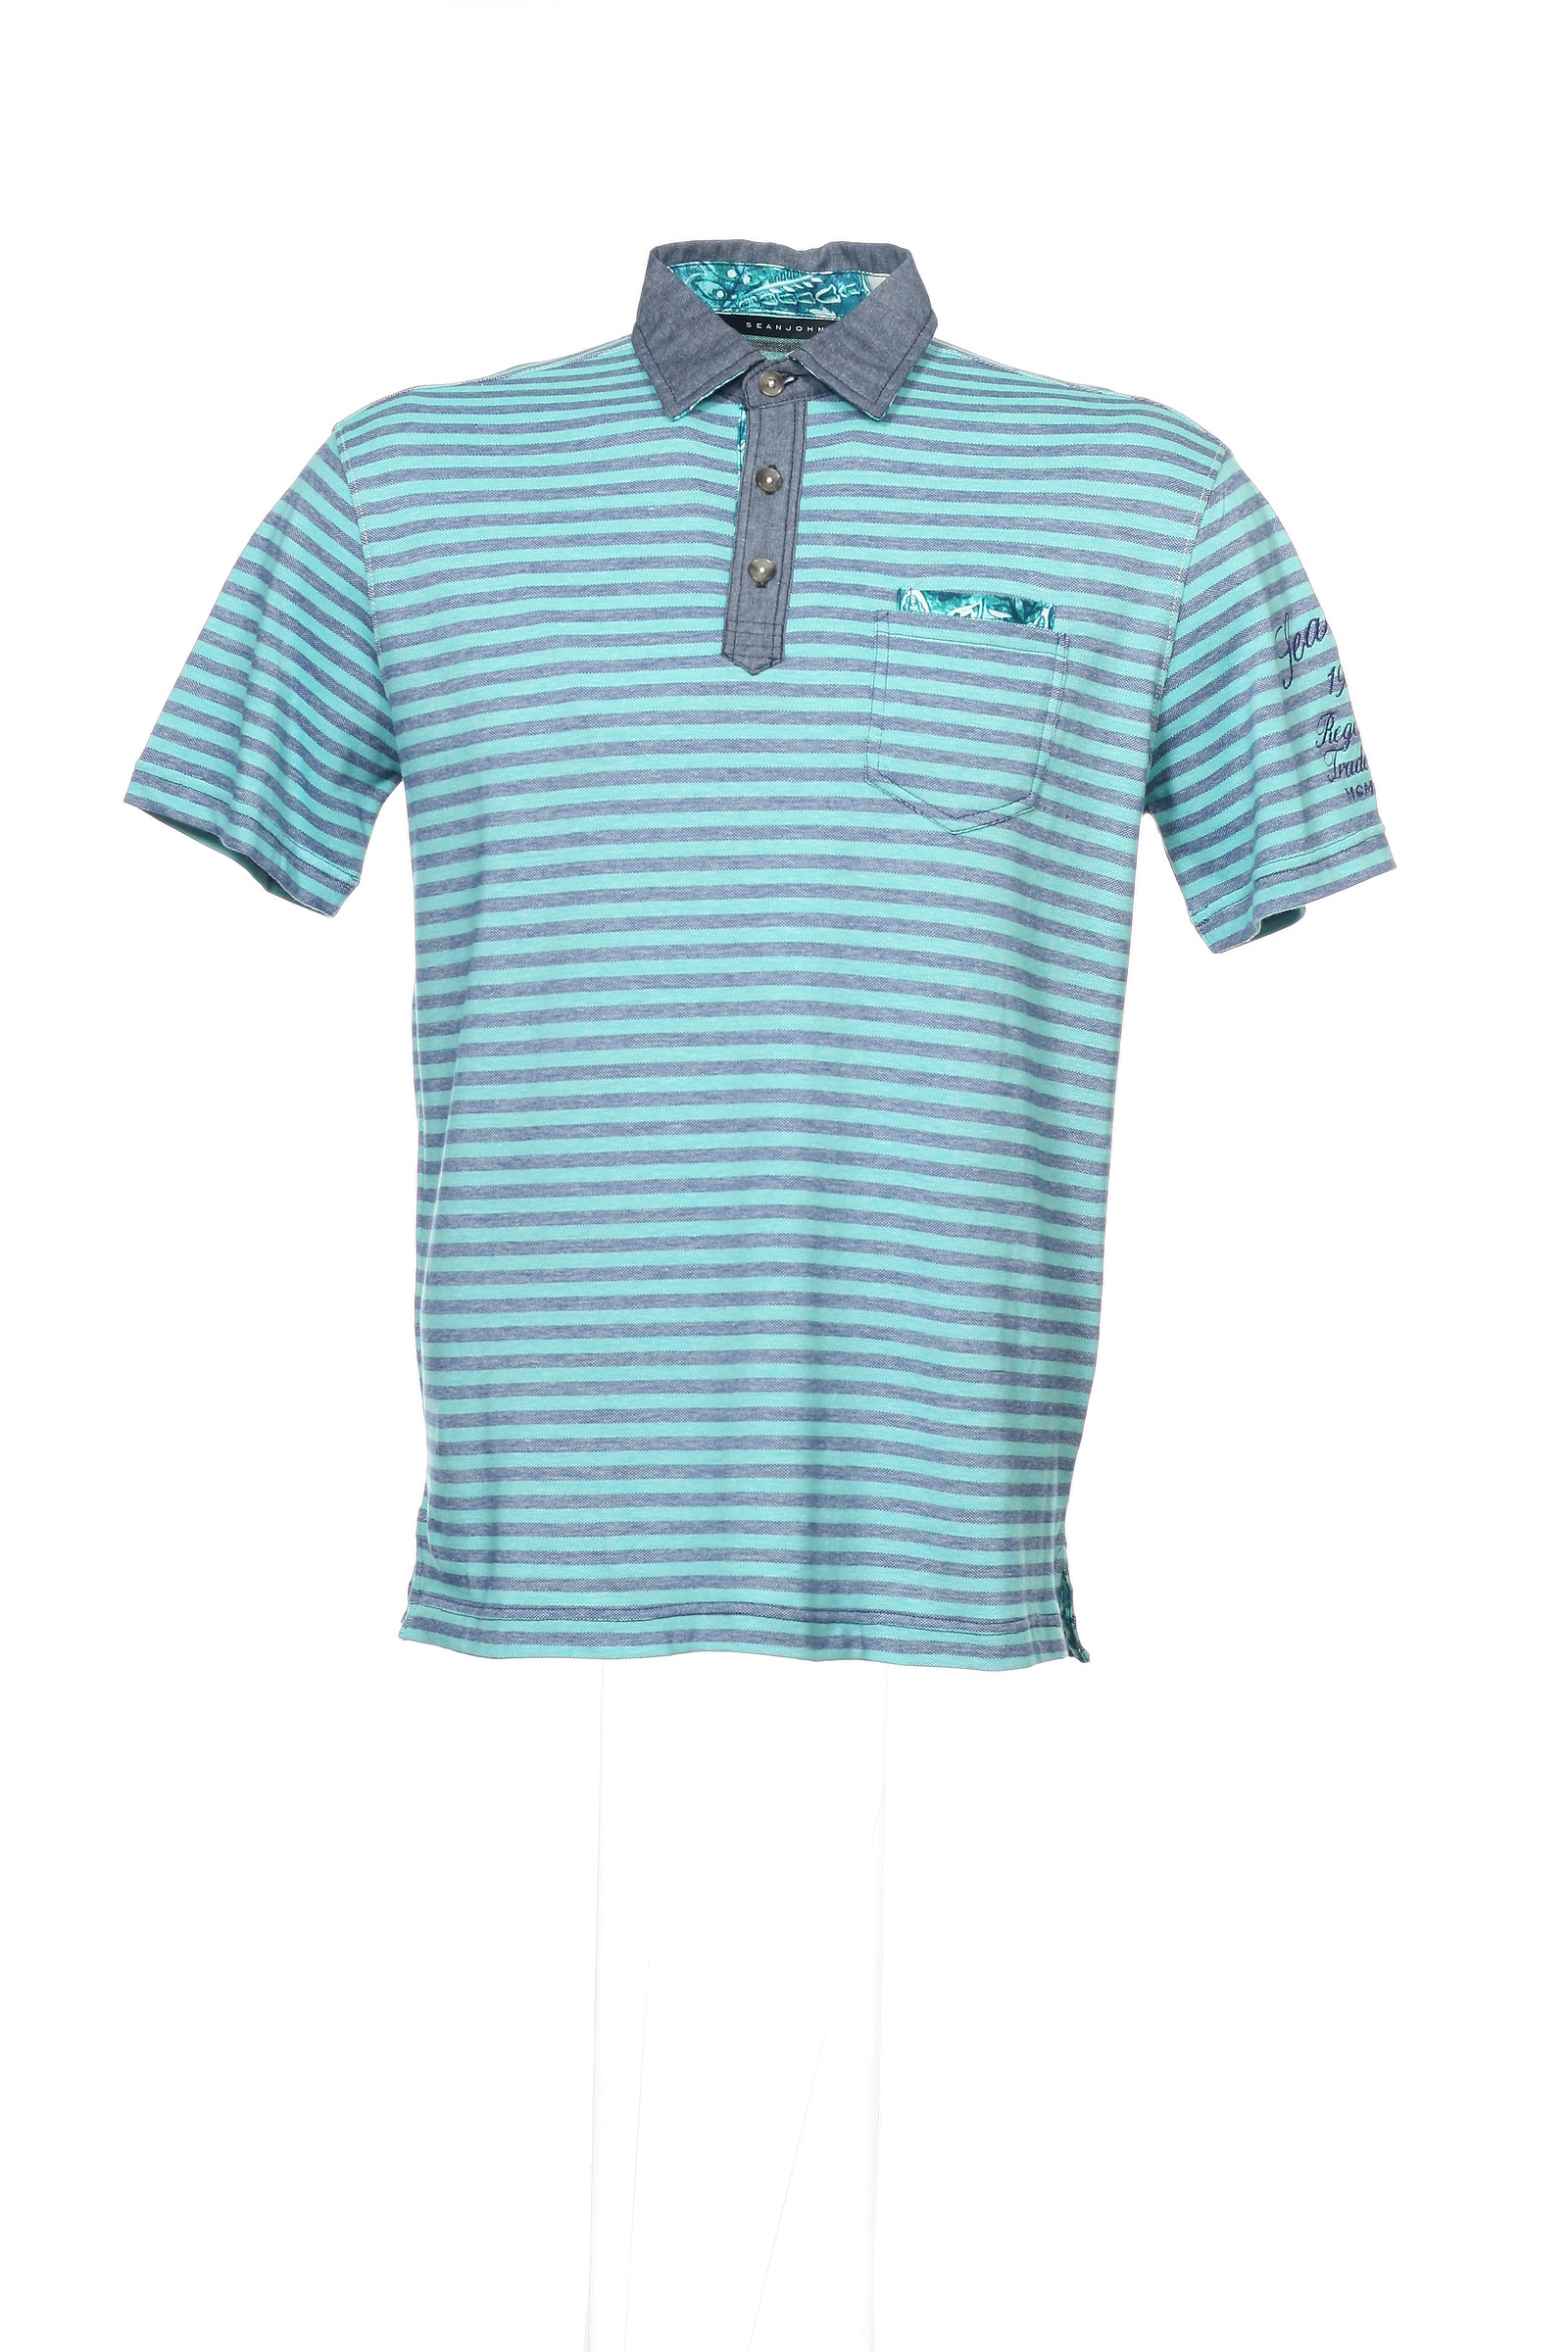 6a90a2e723bb NWT Sean John Blue Horizontal Striped Polo Shirt Golf XL  58